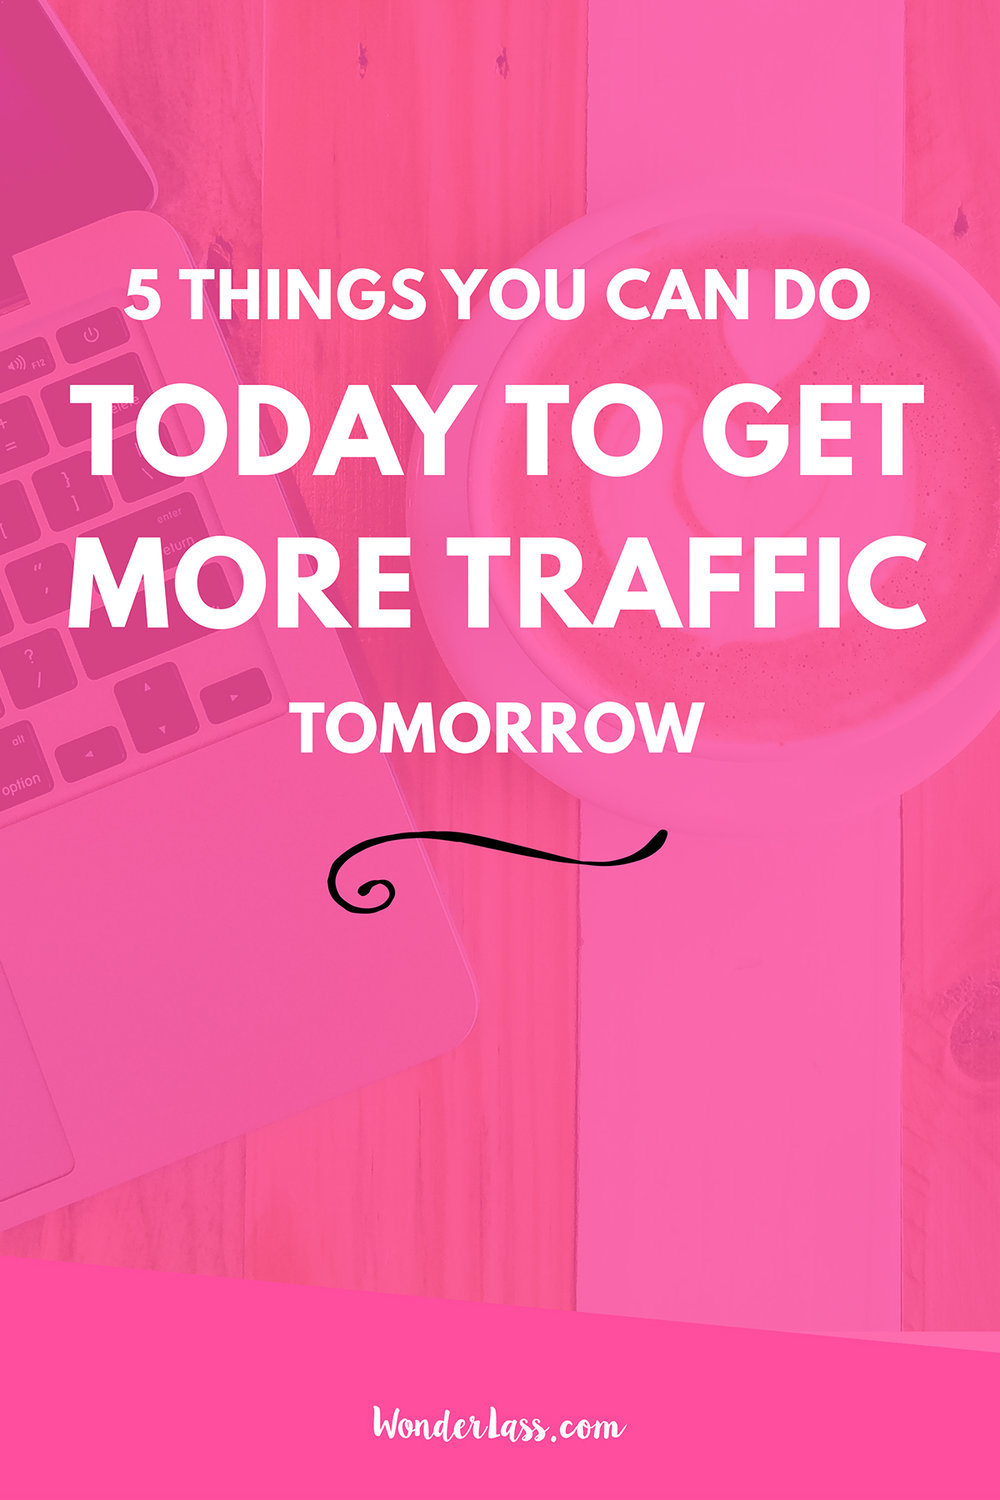 5 Things You Can Do TODAY to Get More Website Traffic Tomorrow | Wonderlass